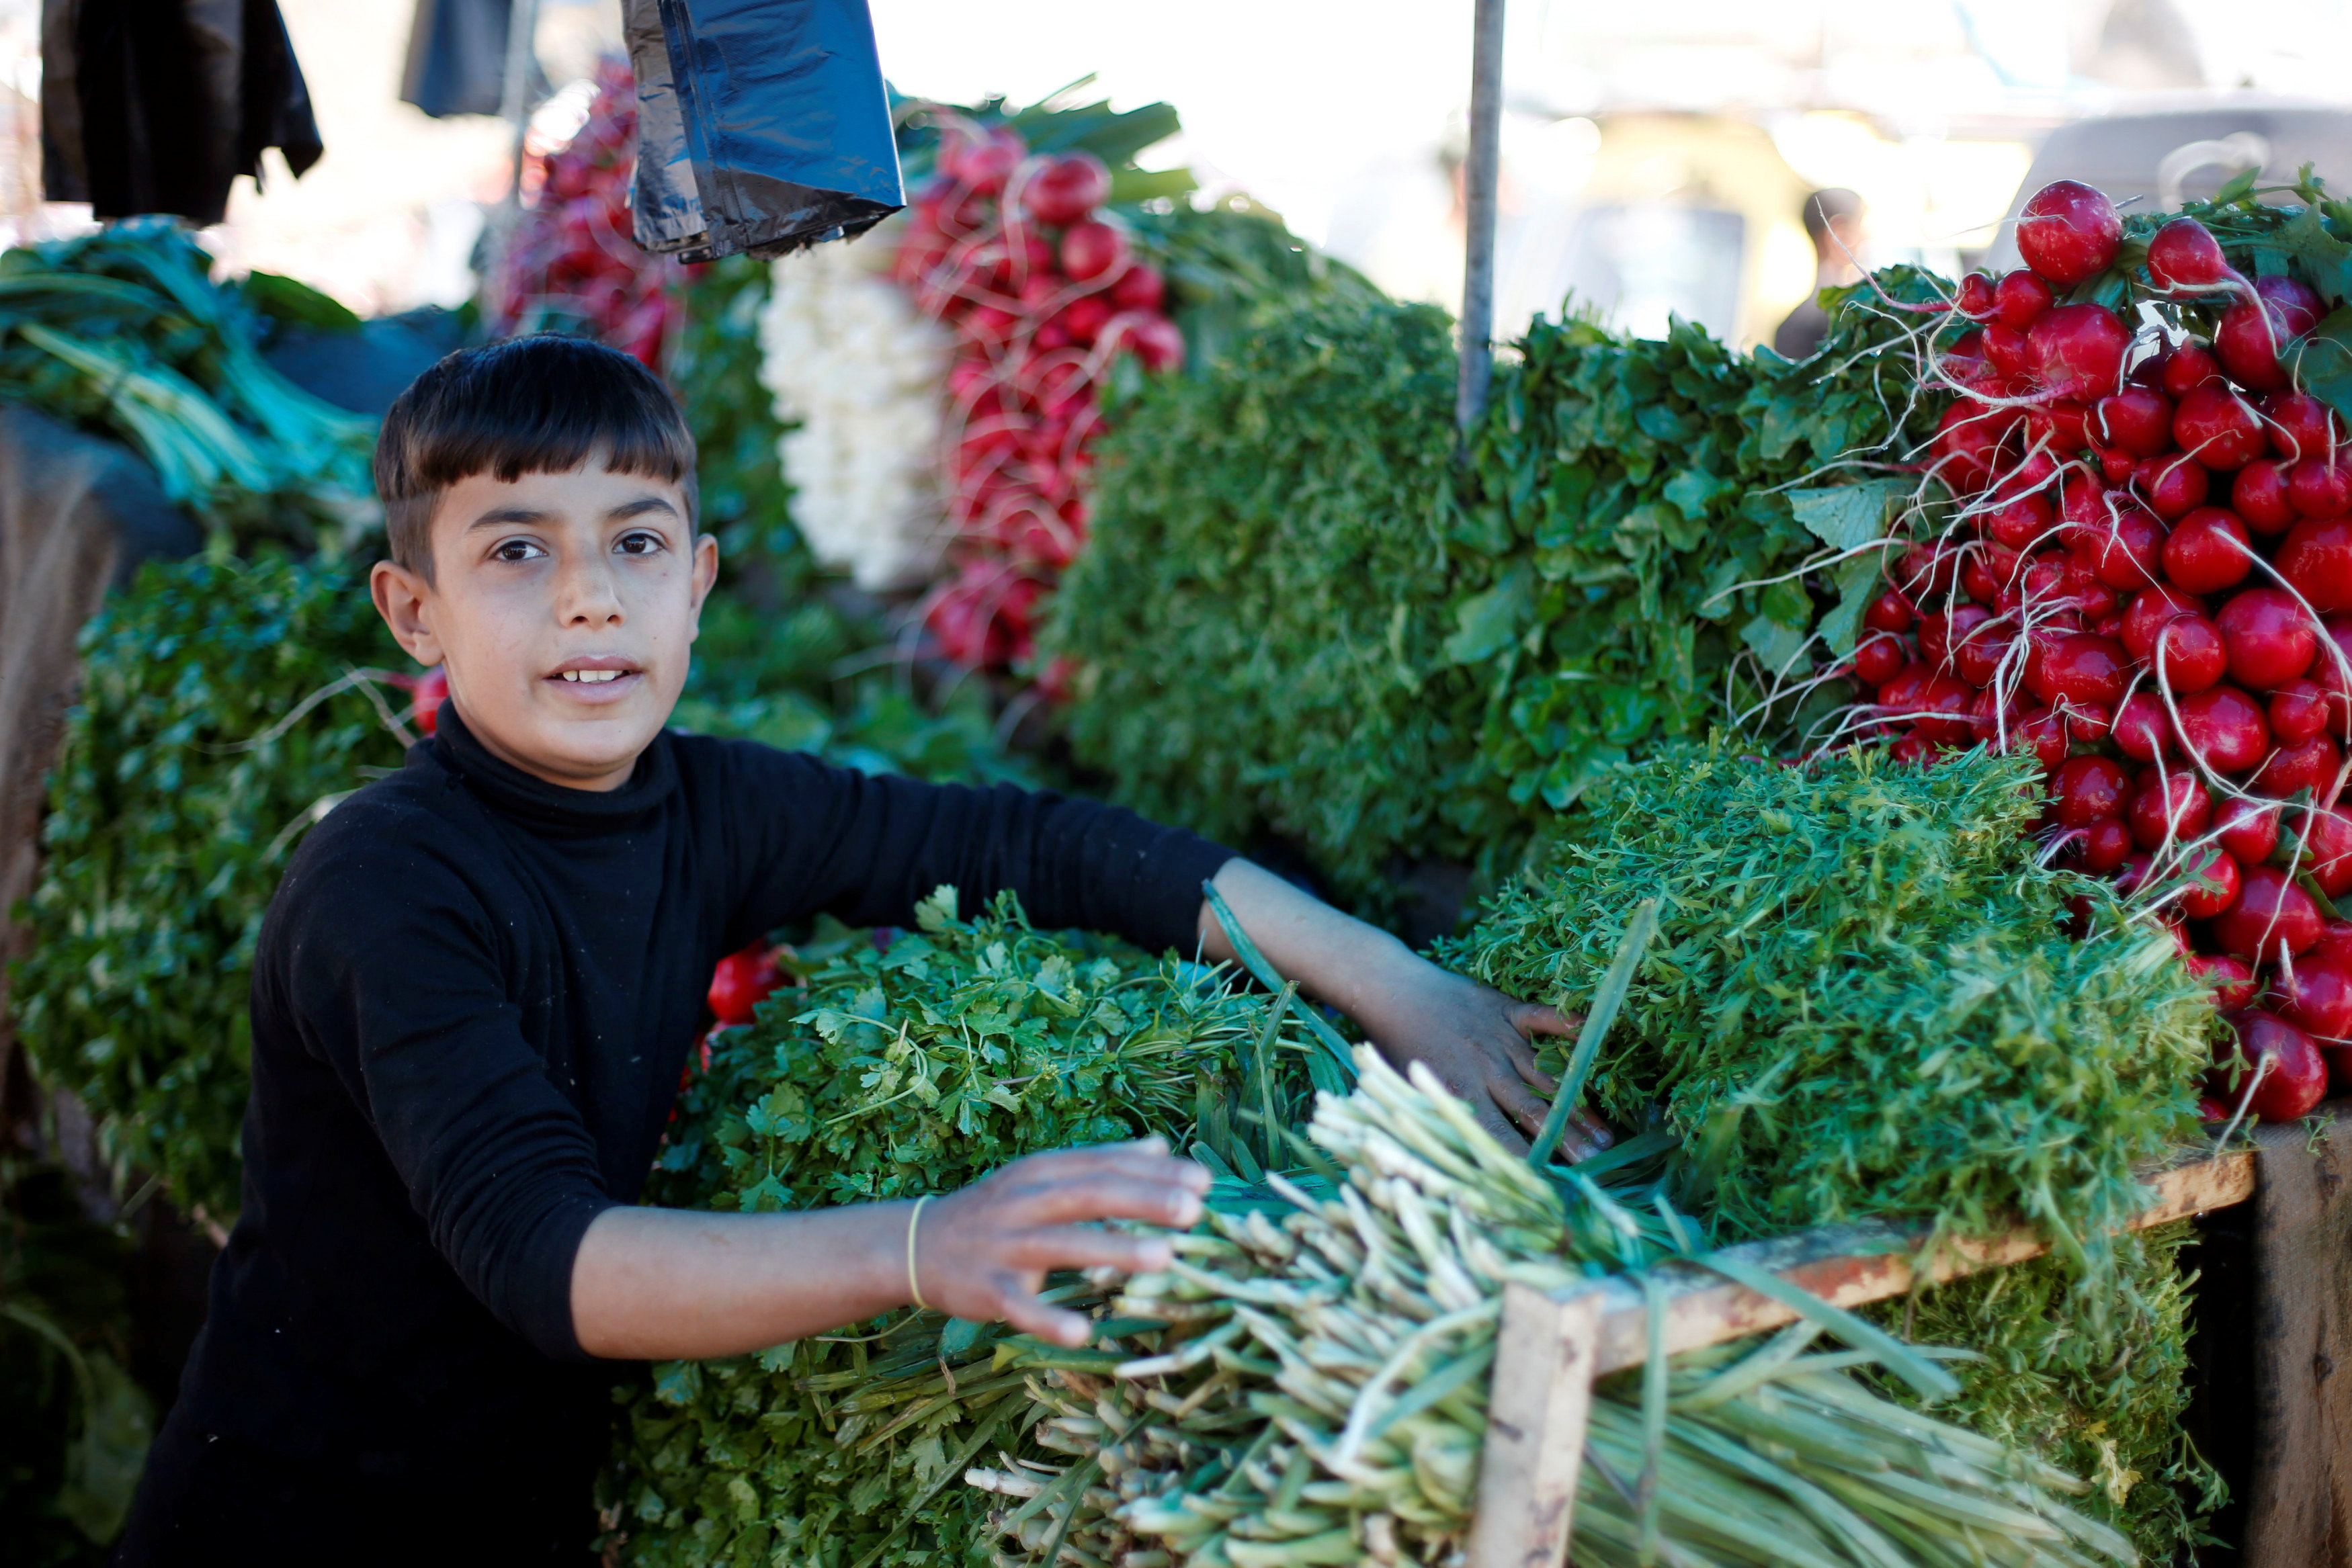 Falah, 11, sells vegetables and fruits in a market in eastern Mosul, Iraq April 20, 2017. REUTERS/ Muhammad Hamed